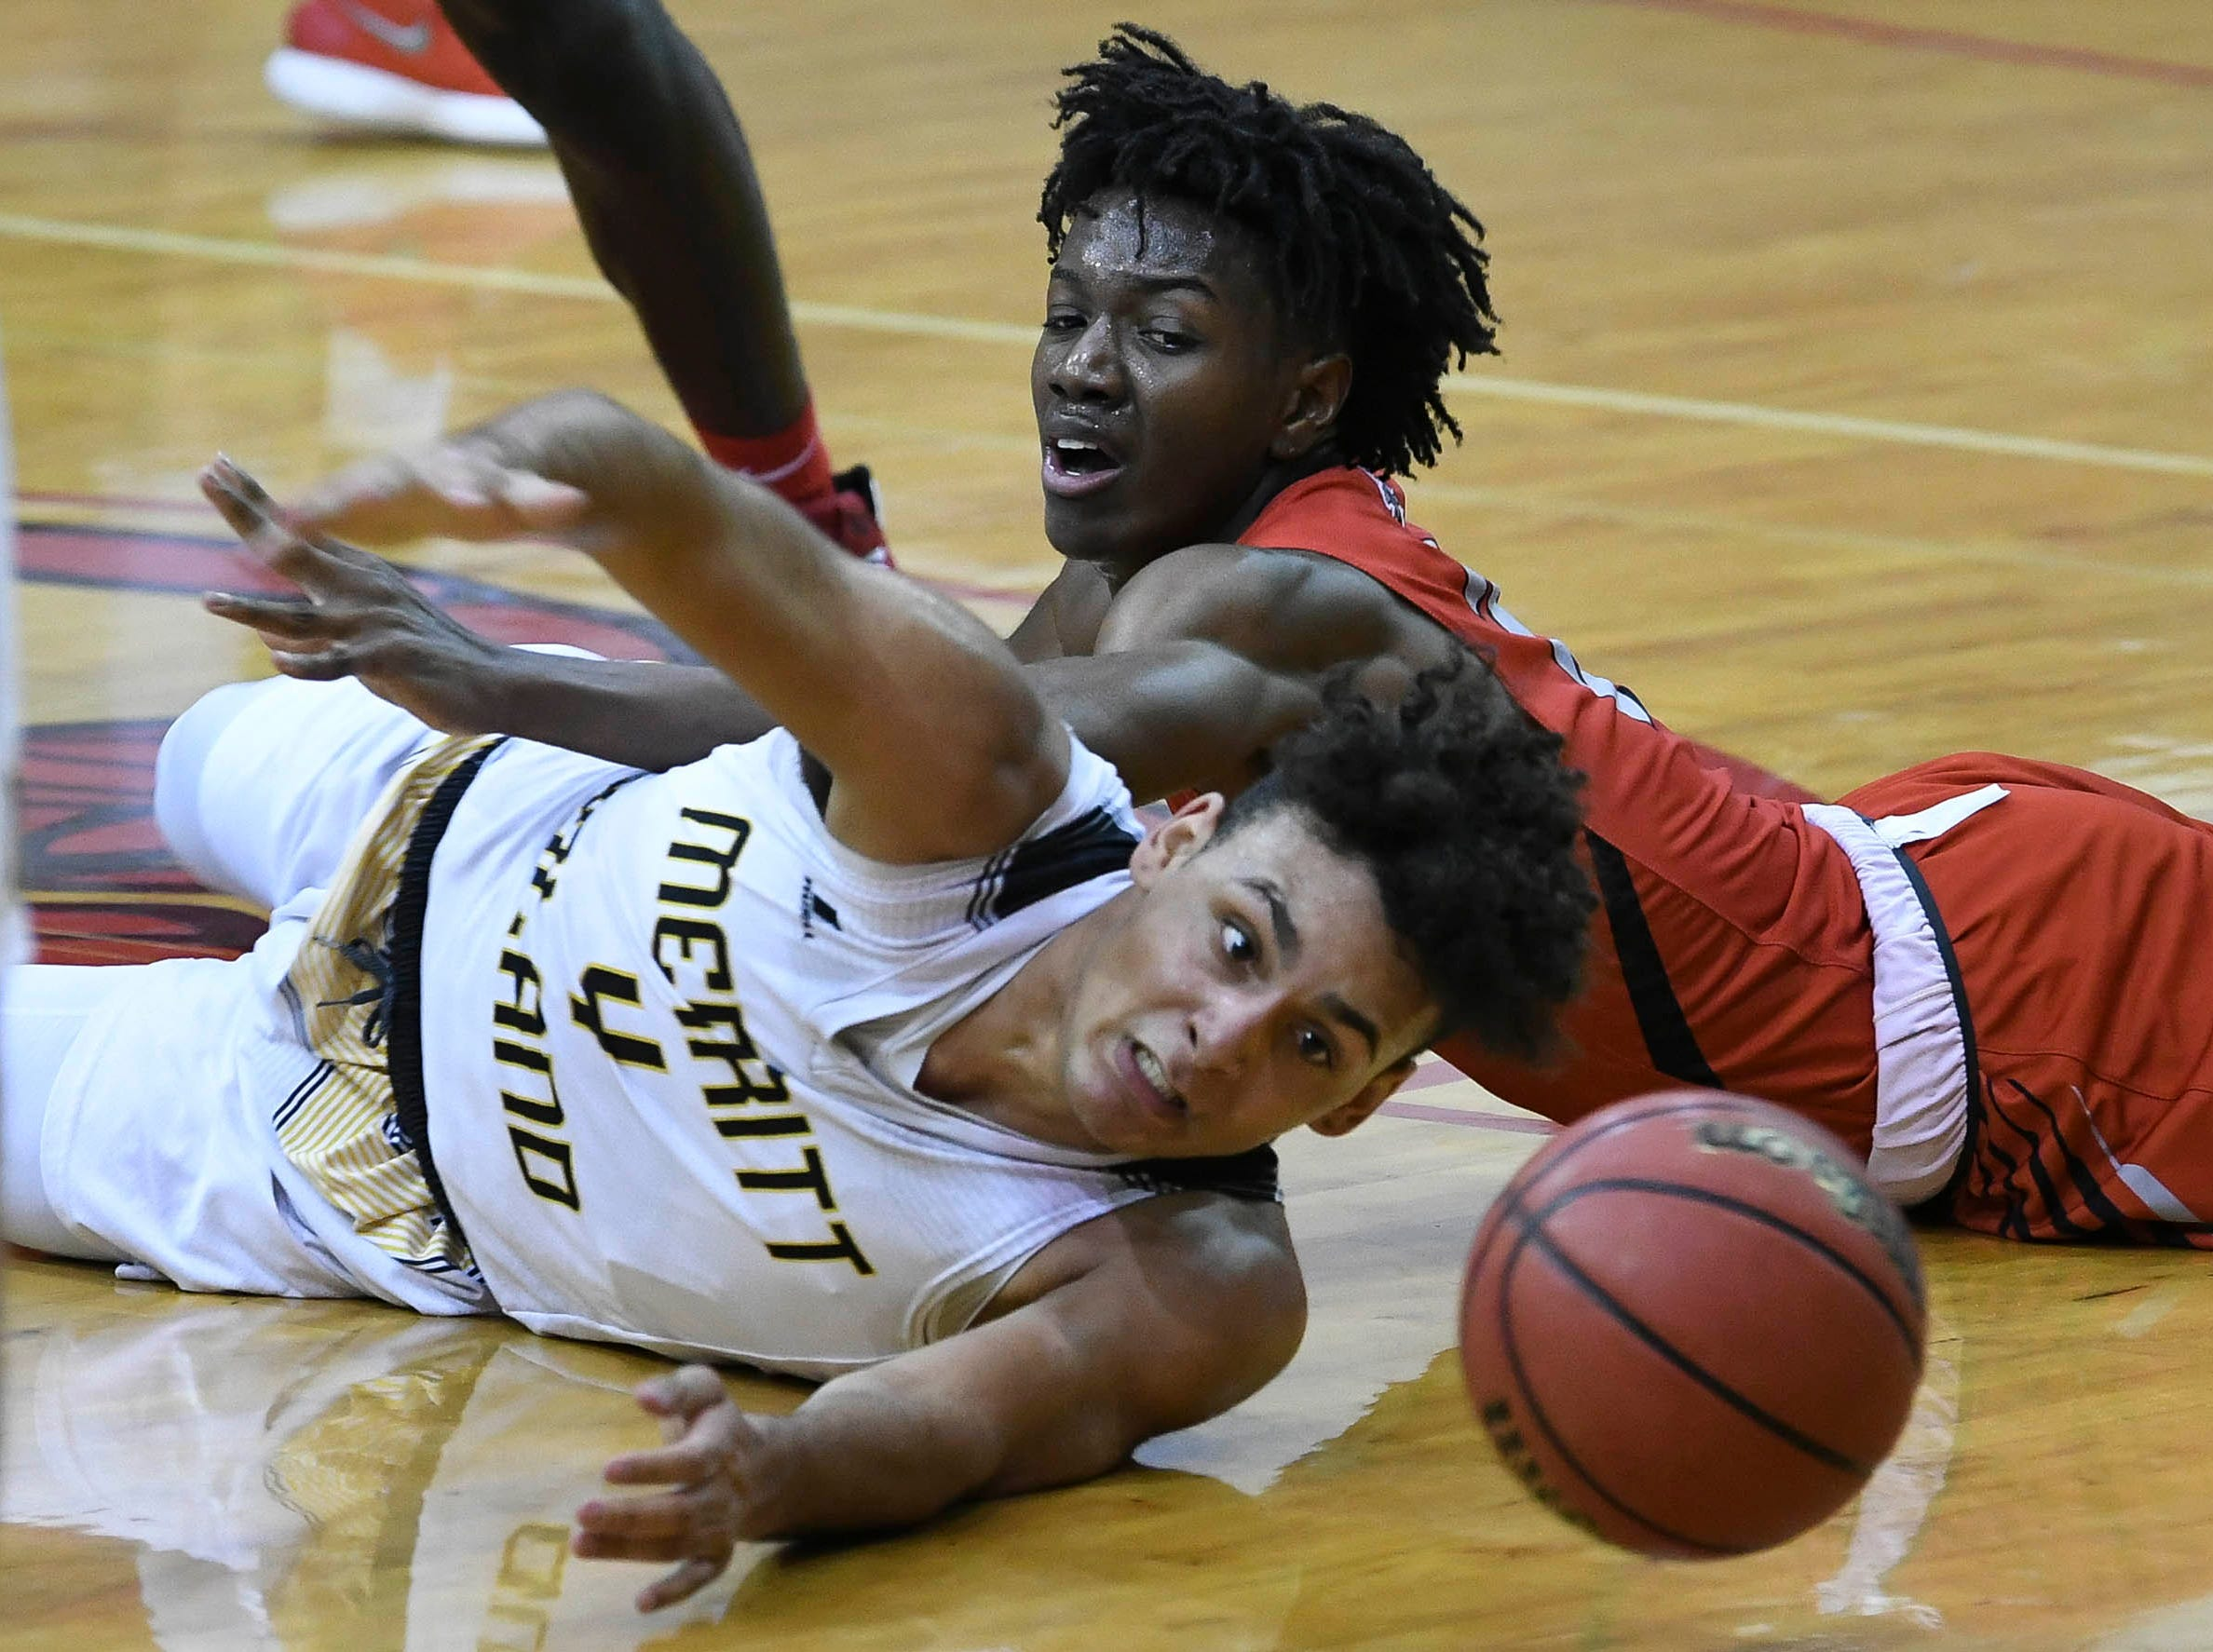 Tyus Echols of Merritt Island and BJ Forbes of Palm Bay chase a loose ball during Tuesday's District 14-6A basketball playoff game